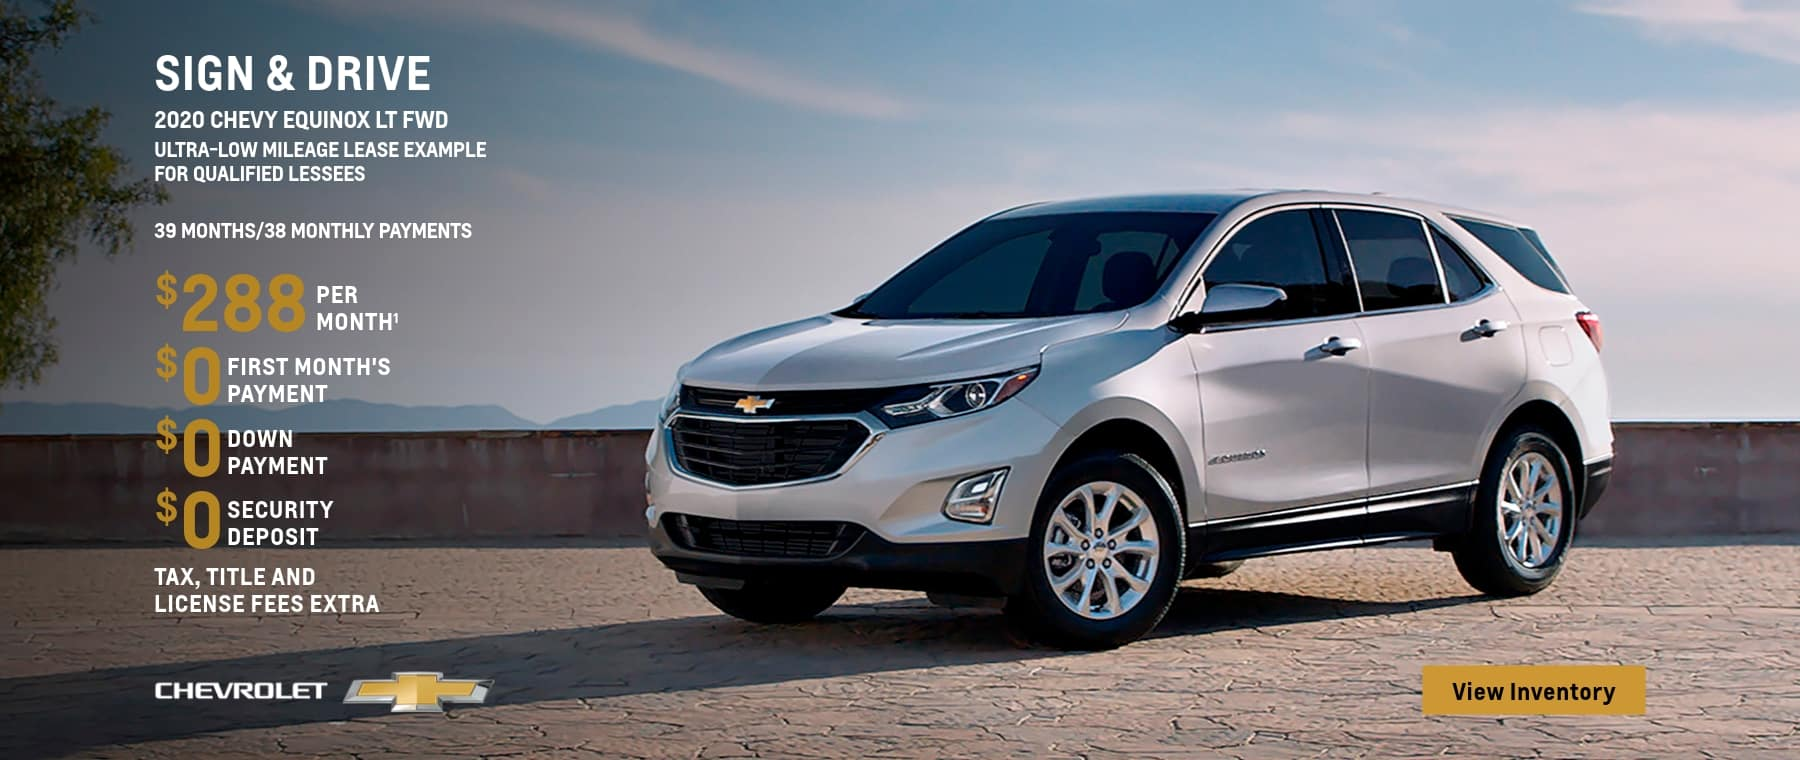 2020 Equinox LT FWD Ultra-Low Mileage Lease Example for Qualified Lessees $288 per month.